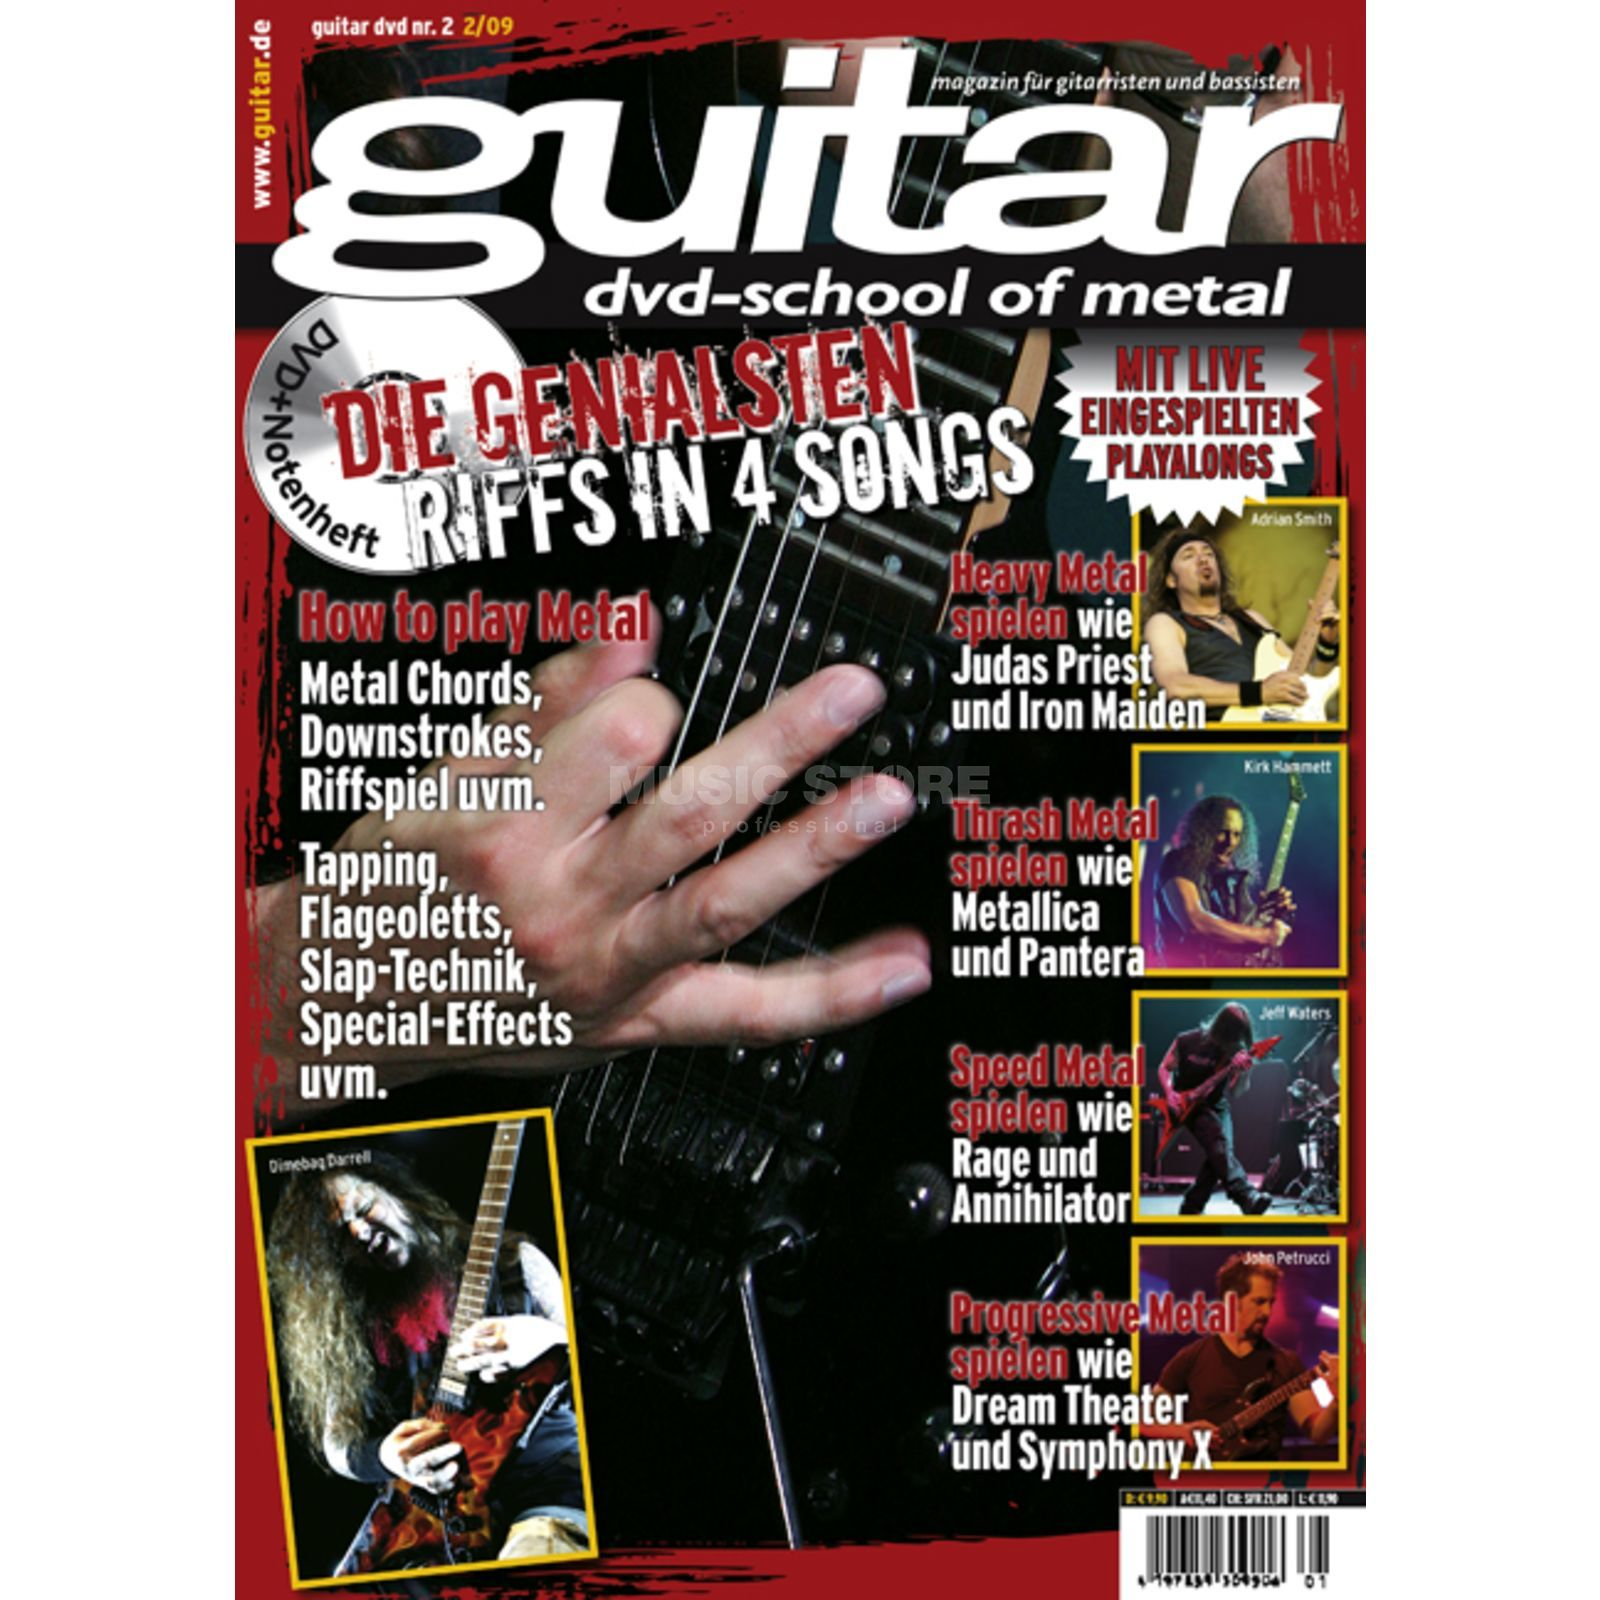 PPV Medien guitar Vol 2 - School of Metal DVD, Victor Smolski Produktbillede